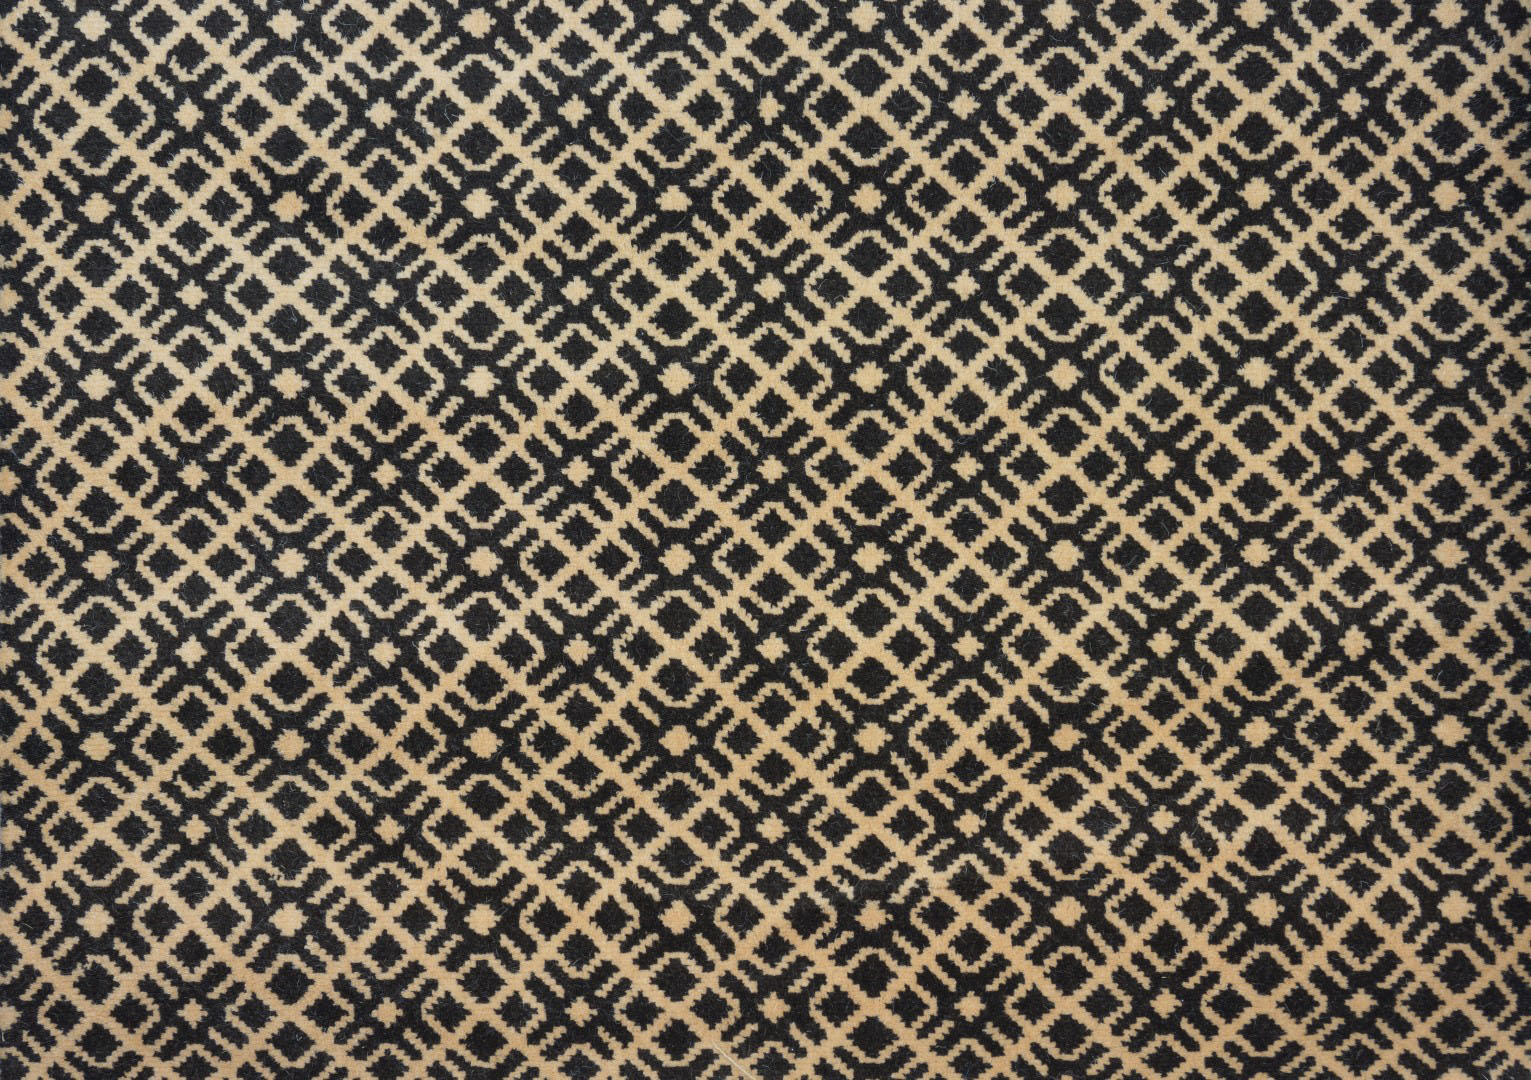 moquette tiss e 100 laine motif graphique croisillons beige collection textile moquettes. Black Bedroom Furniture Sets. Home Design Ideas